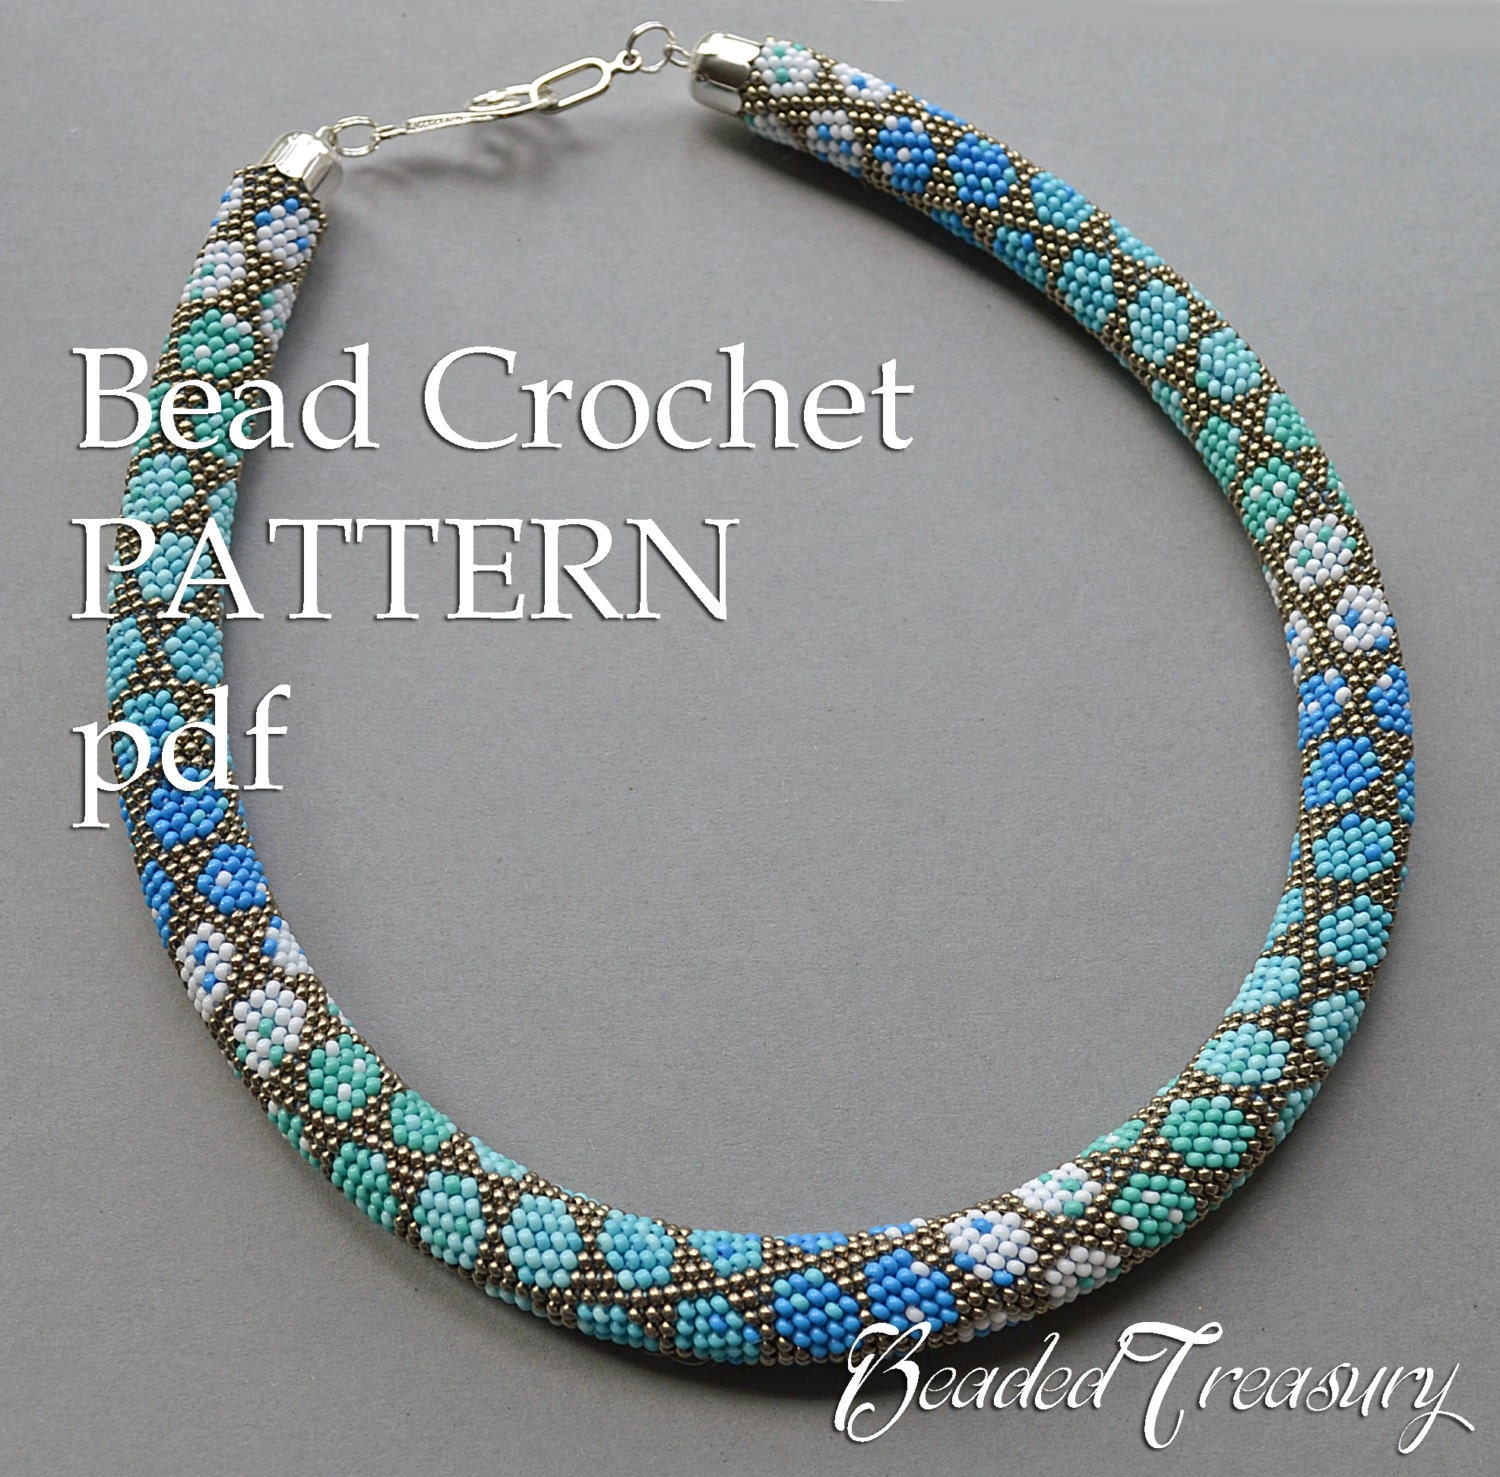 City style bead crochet pattern necklace pattern bead crochet rope city style bead crochet pattern necklace pattern bead crochet rope seed bead necklace modern jewelry beaded necklace pattern only bankloansurffo Image collections